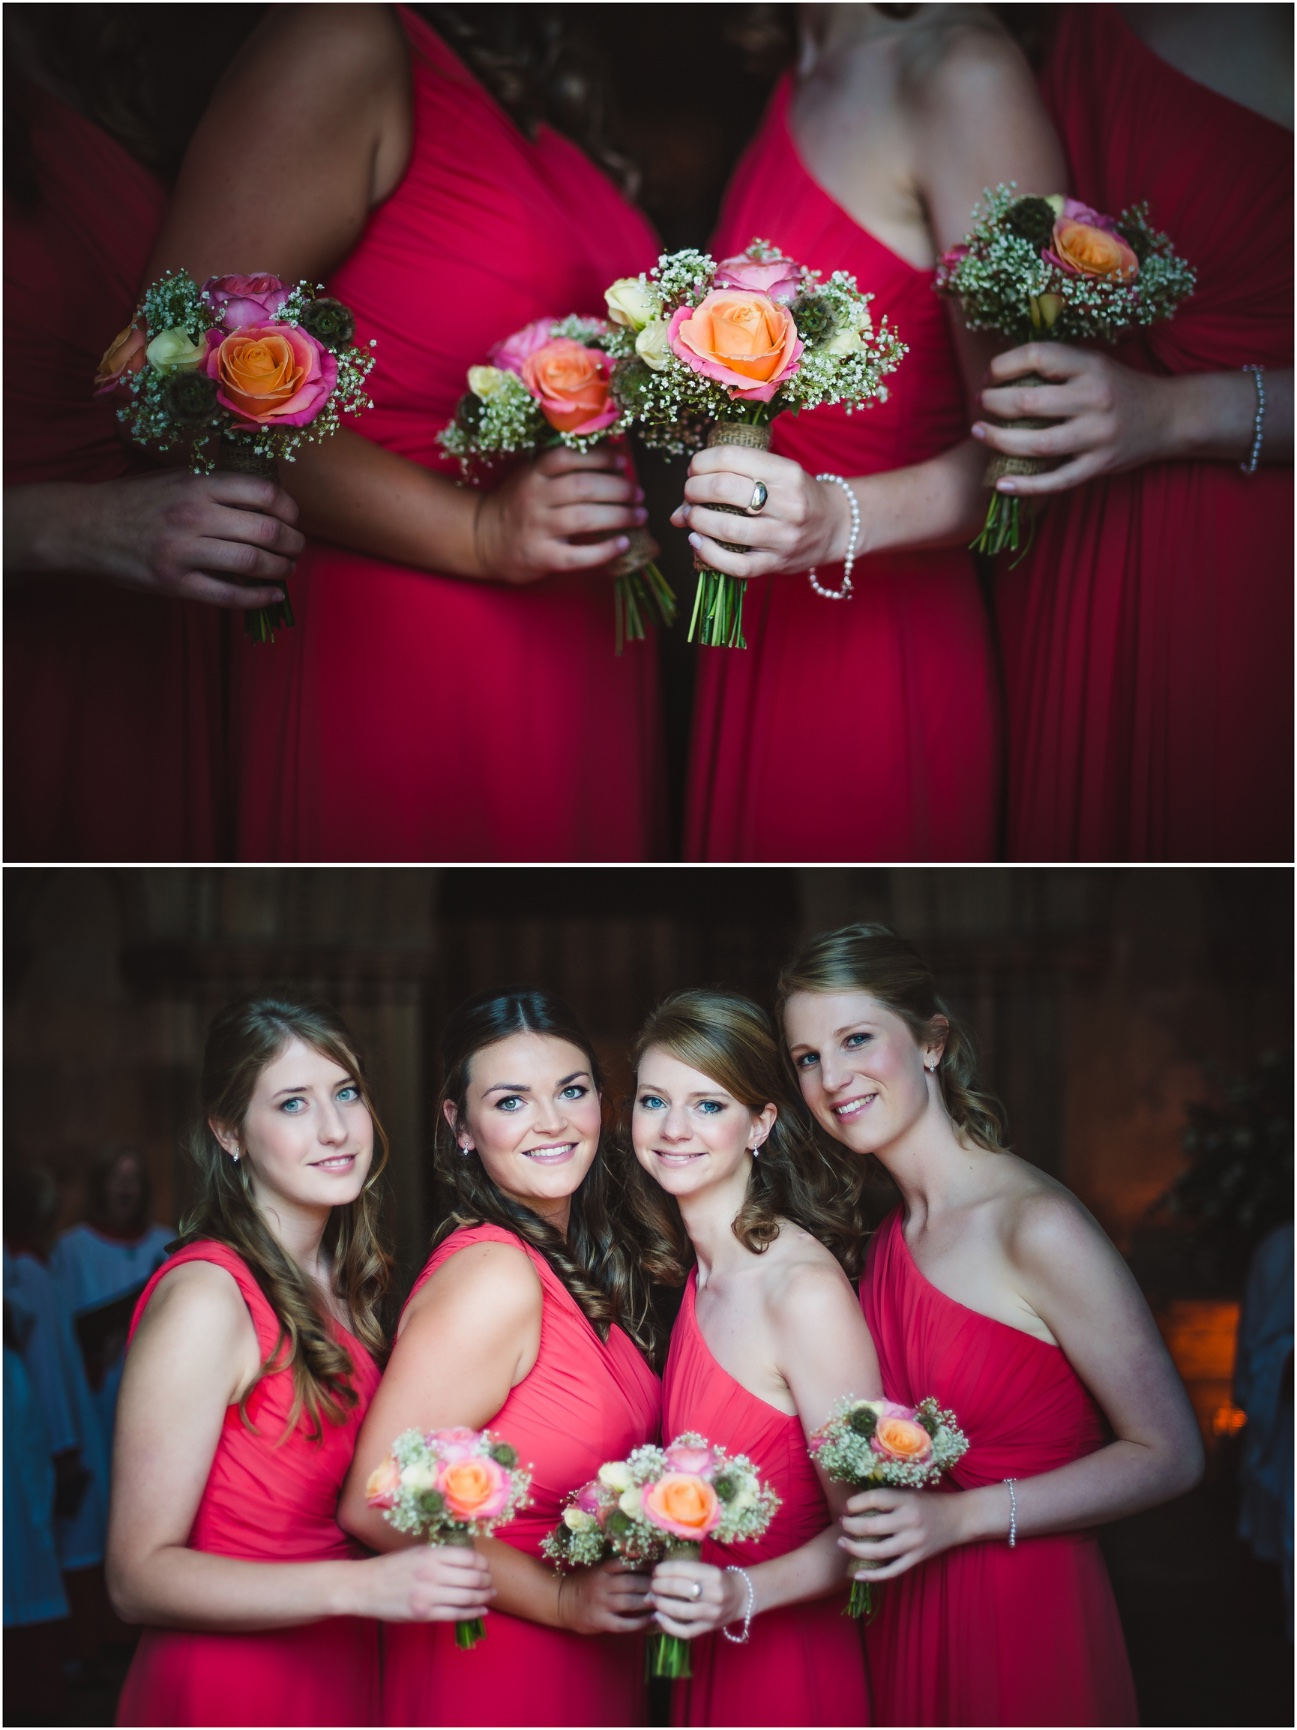 four bridesmaids with their gorgeous flowers bouquets